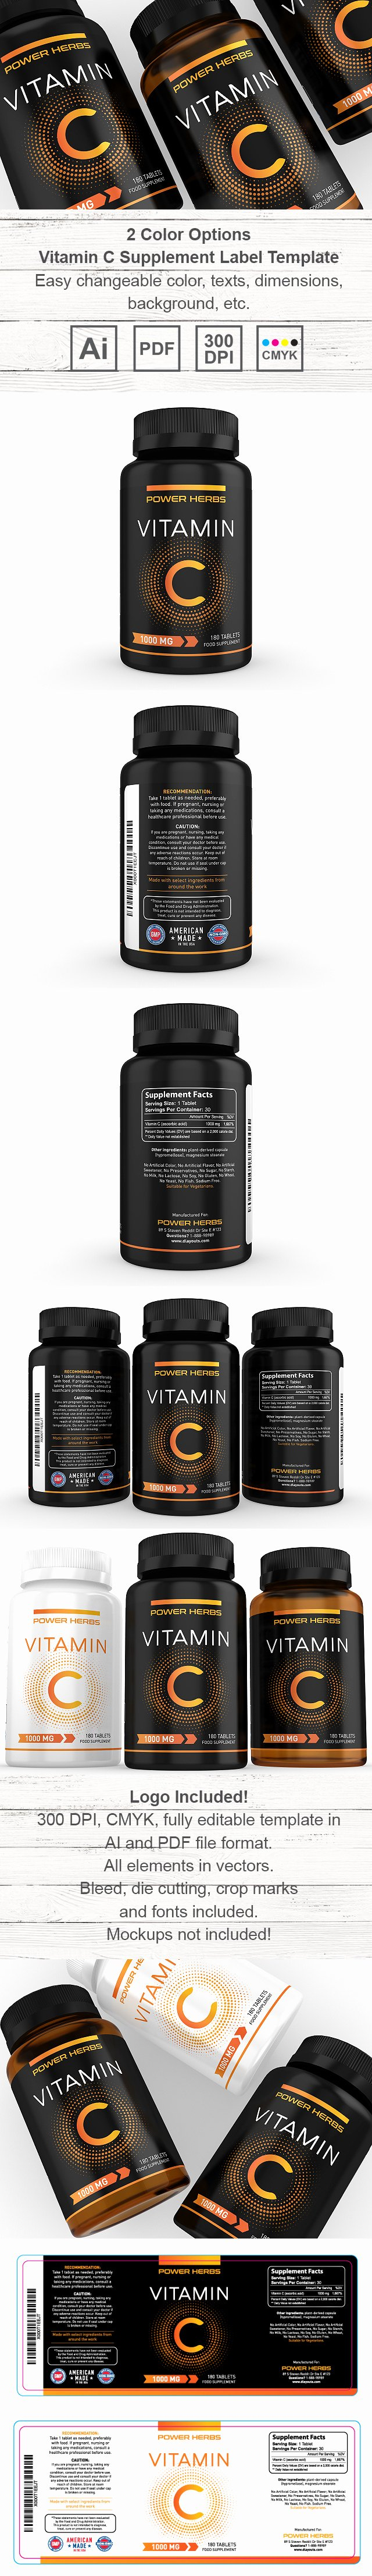 Vitamin Water Label Template Elegant Vitamin C Supplement Label Template Design